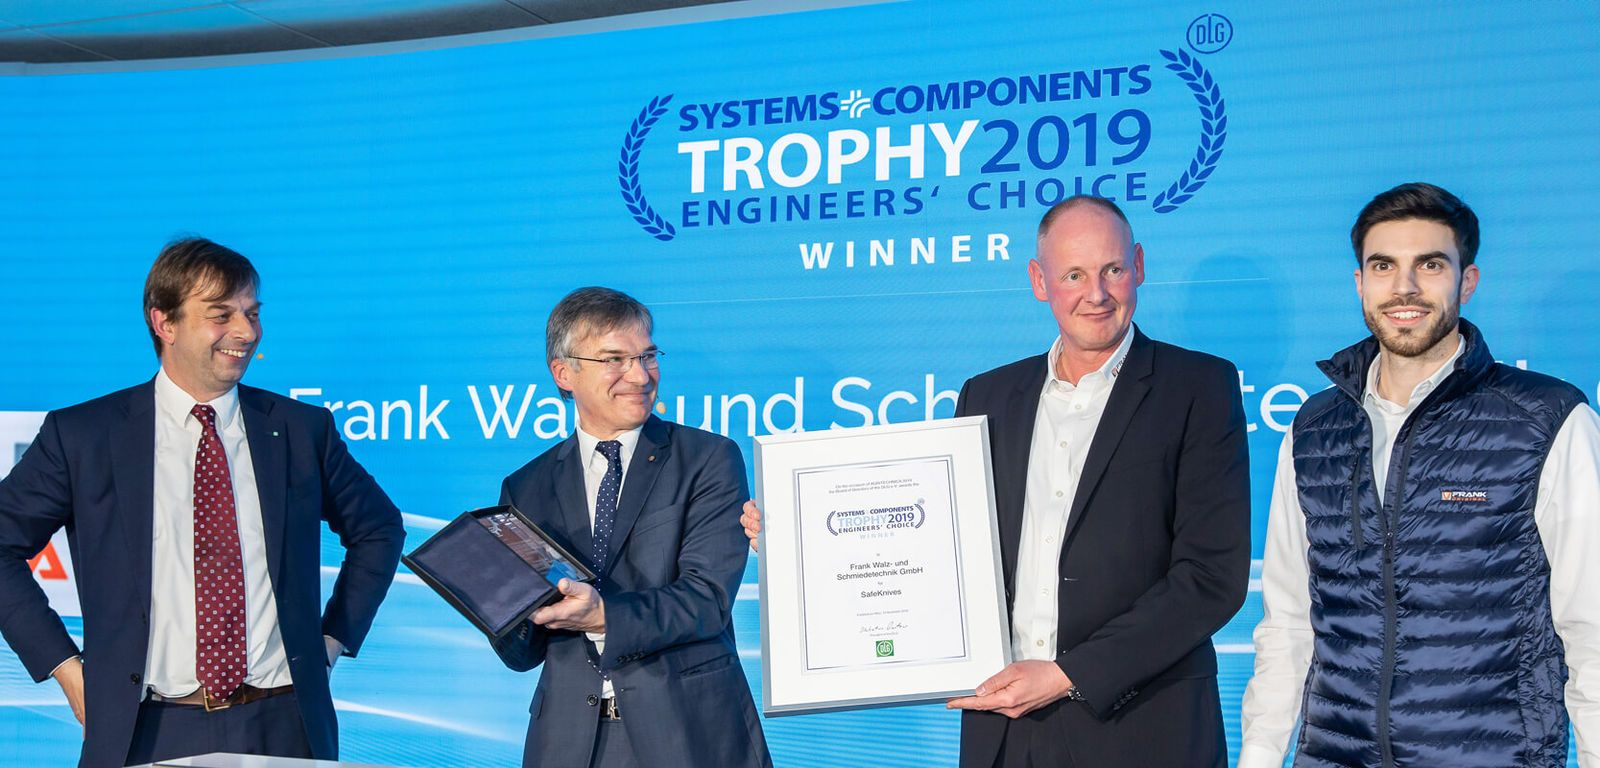 FRANK gewinnt Systems & Components Trophy – Engineers' Choice